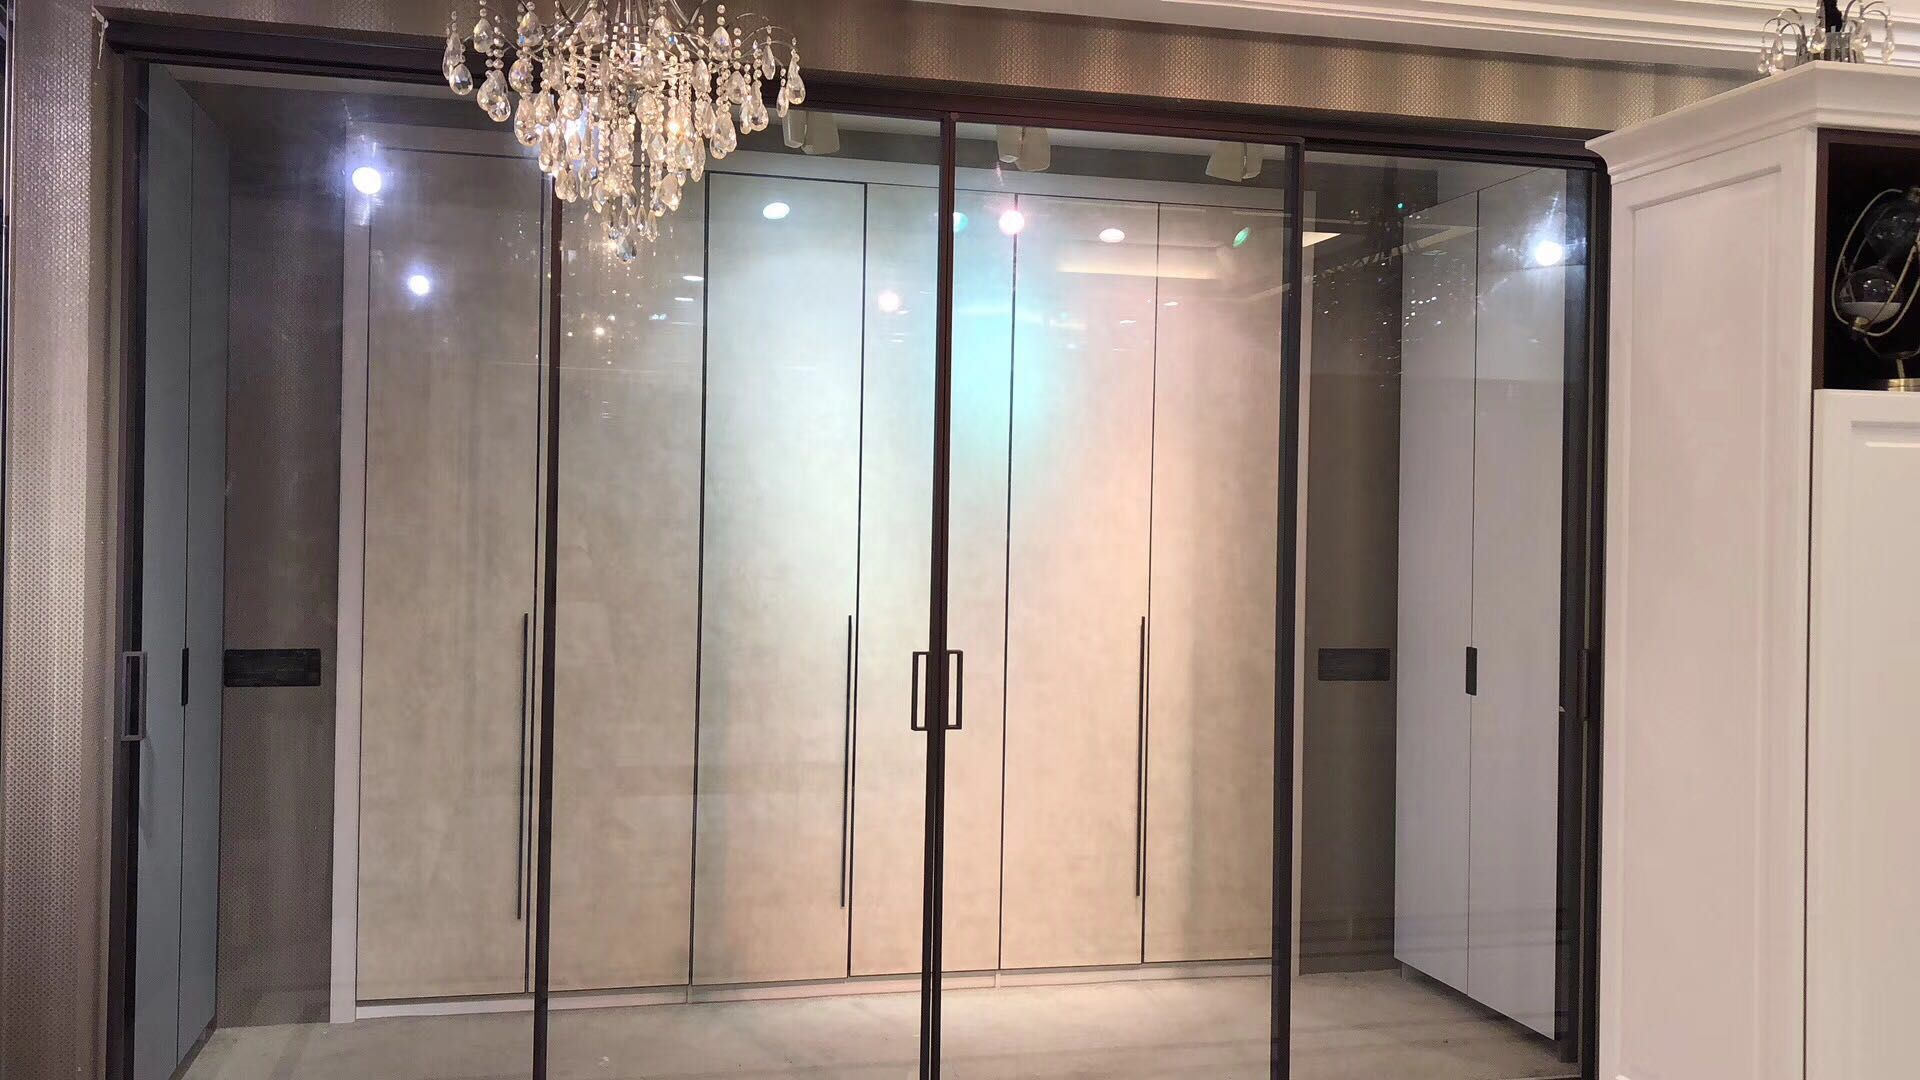 Automatic Door Make Our Life Easy Automatic Sliding Doors Sliding Door Systems Automatic Door